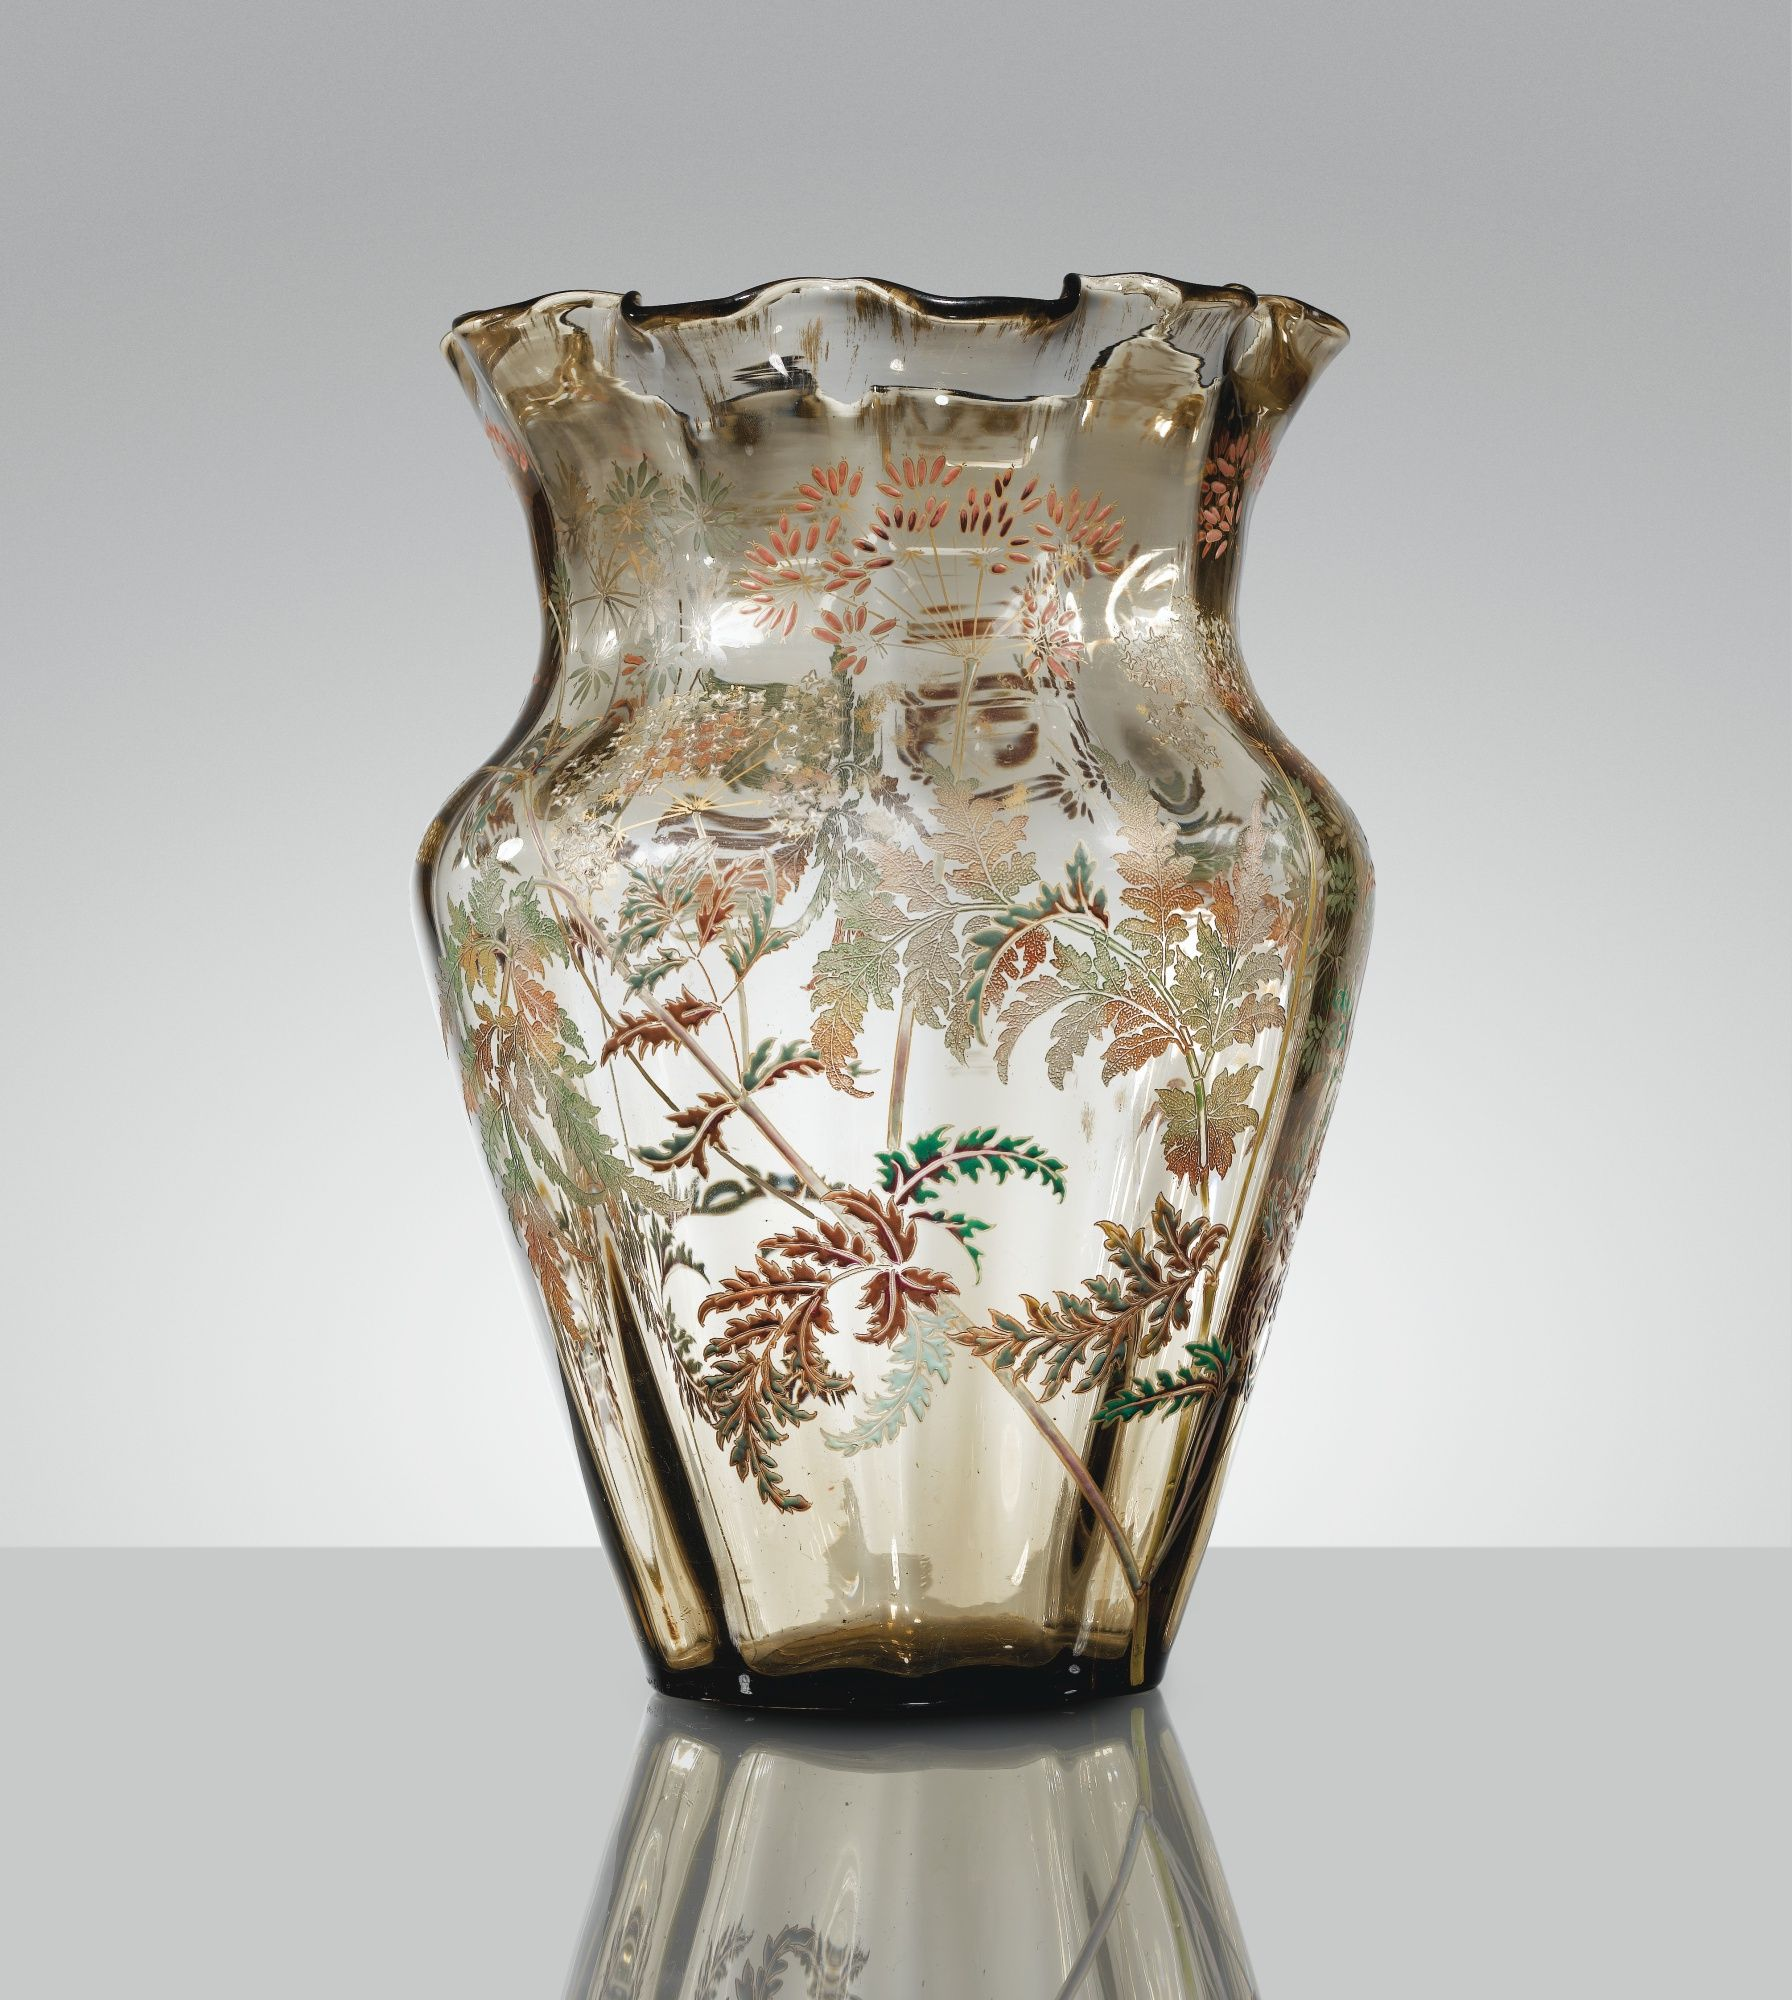 Emile gall vase vers 1890 an acid etched enameled and gilt emile gall vase vers an acid etched enameled and gilt smoked glass vase circa signed reviewsmspy